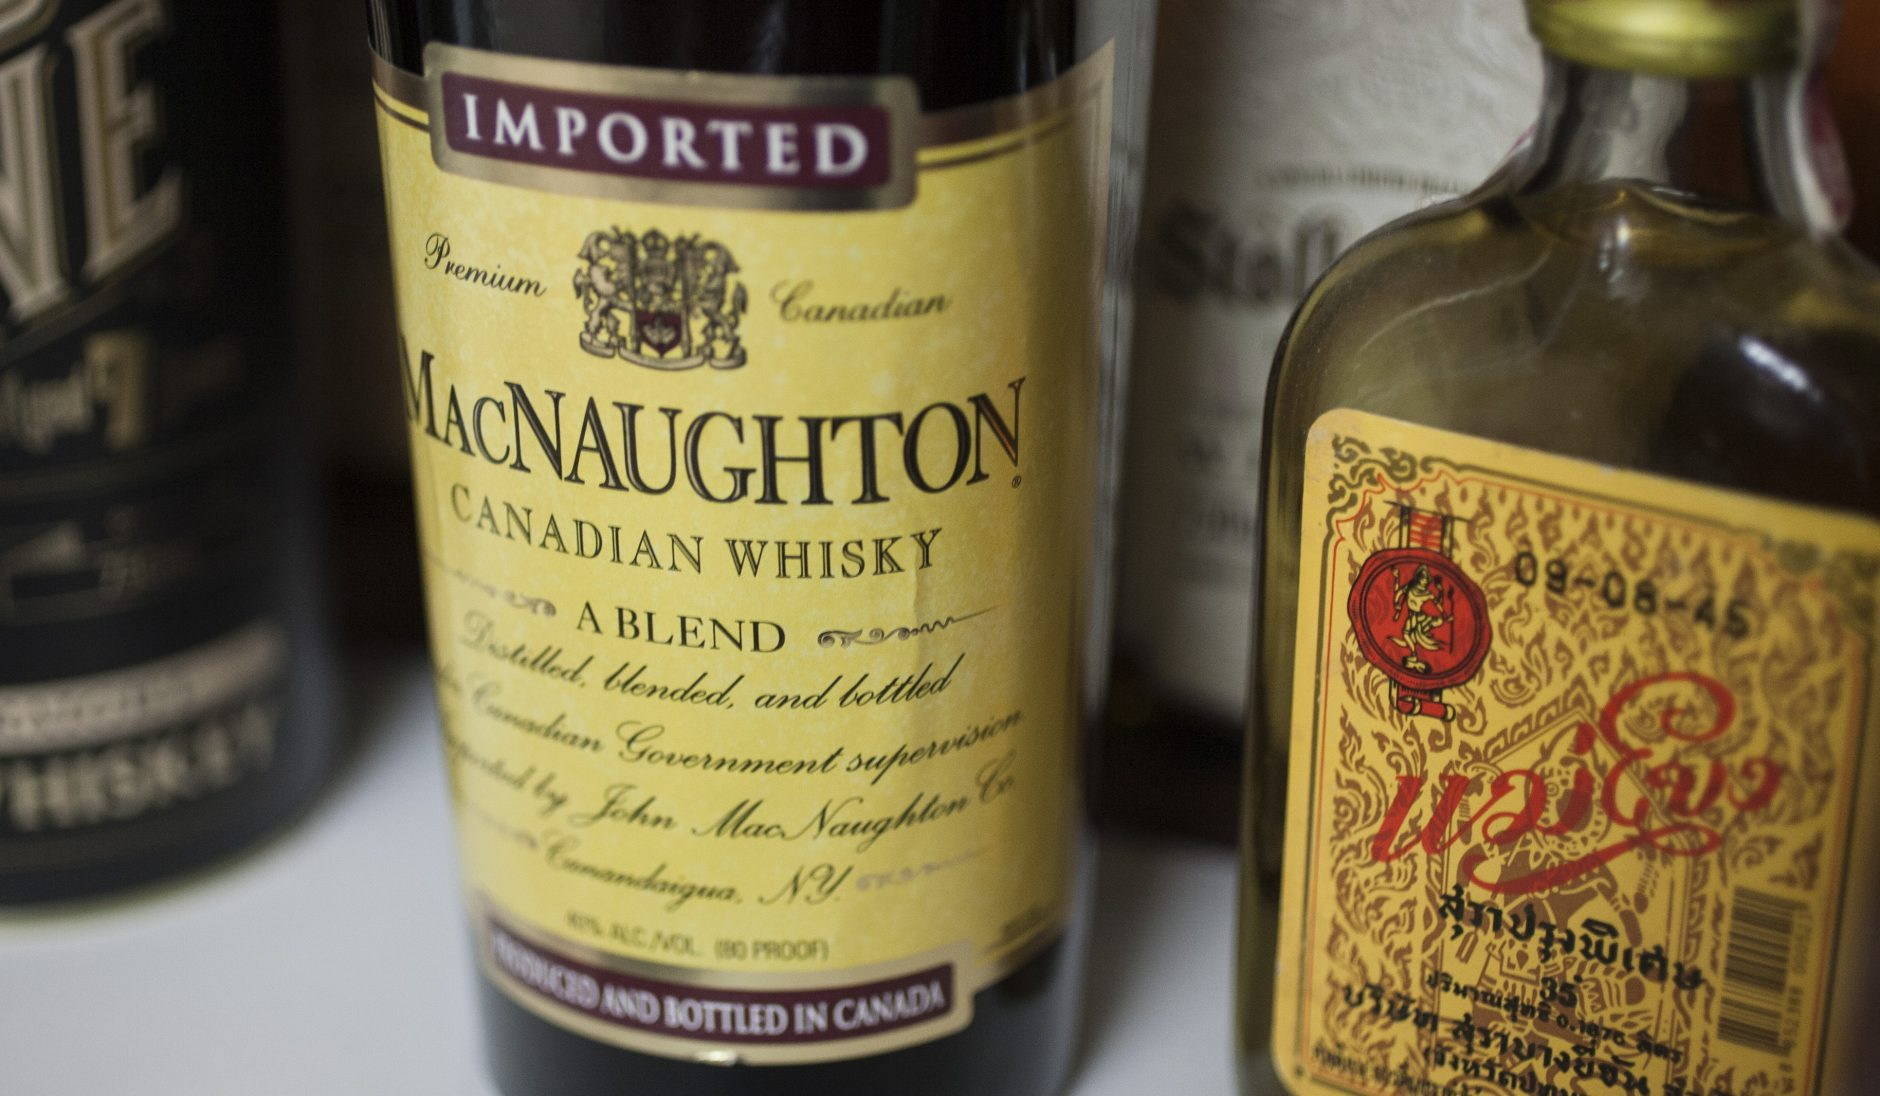 Blended Canadian Whisky